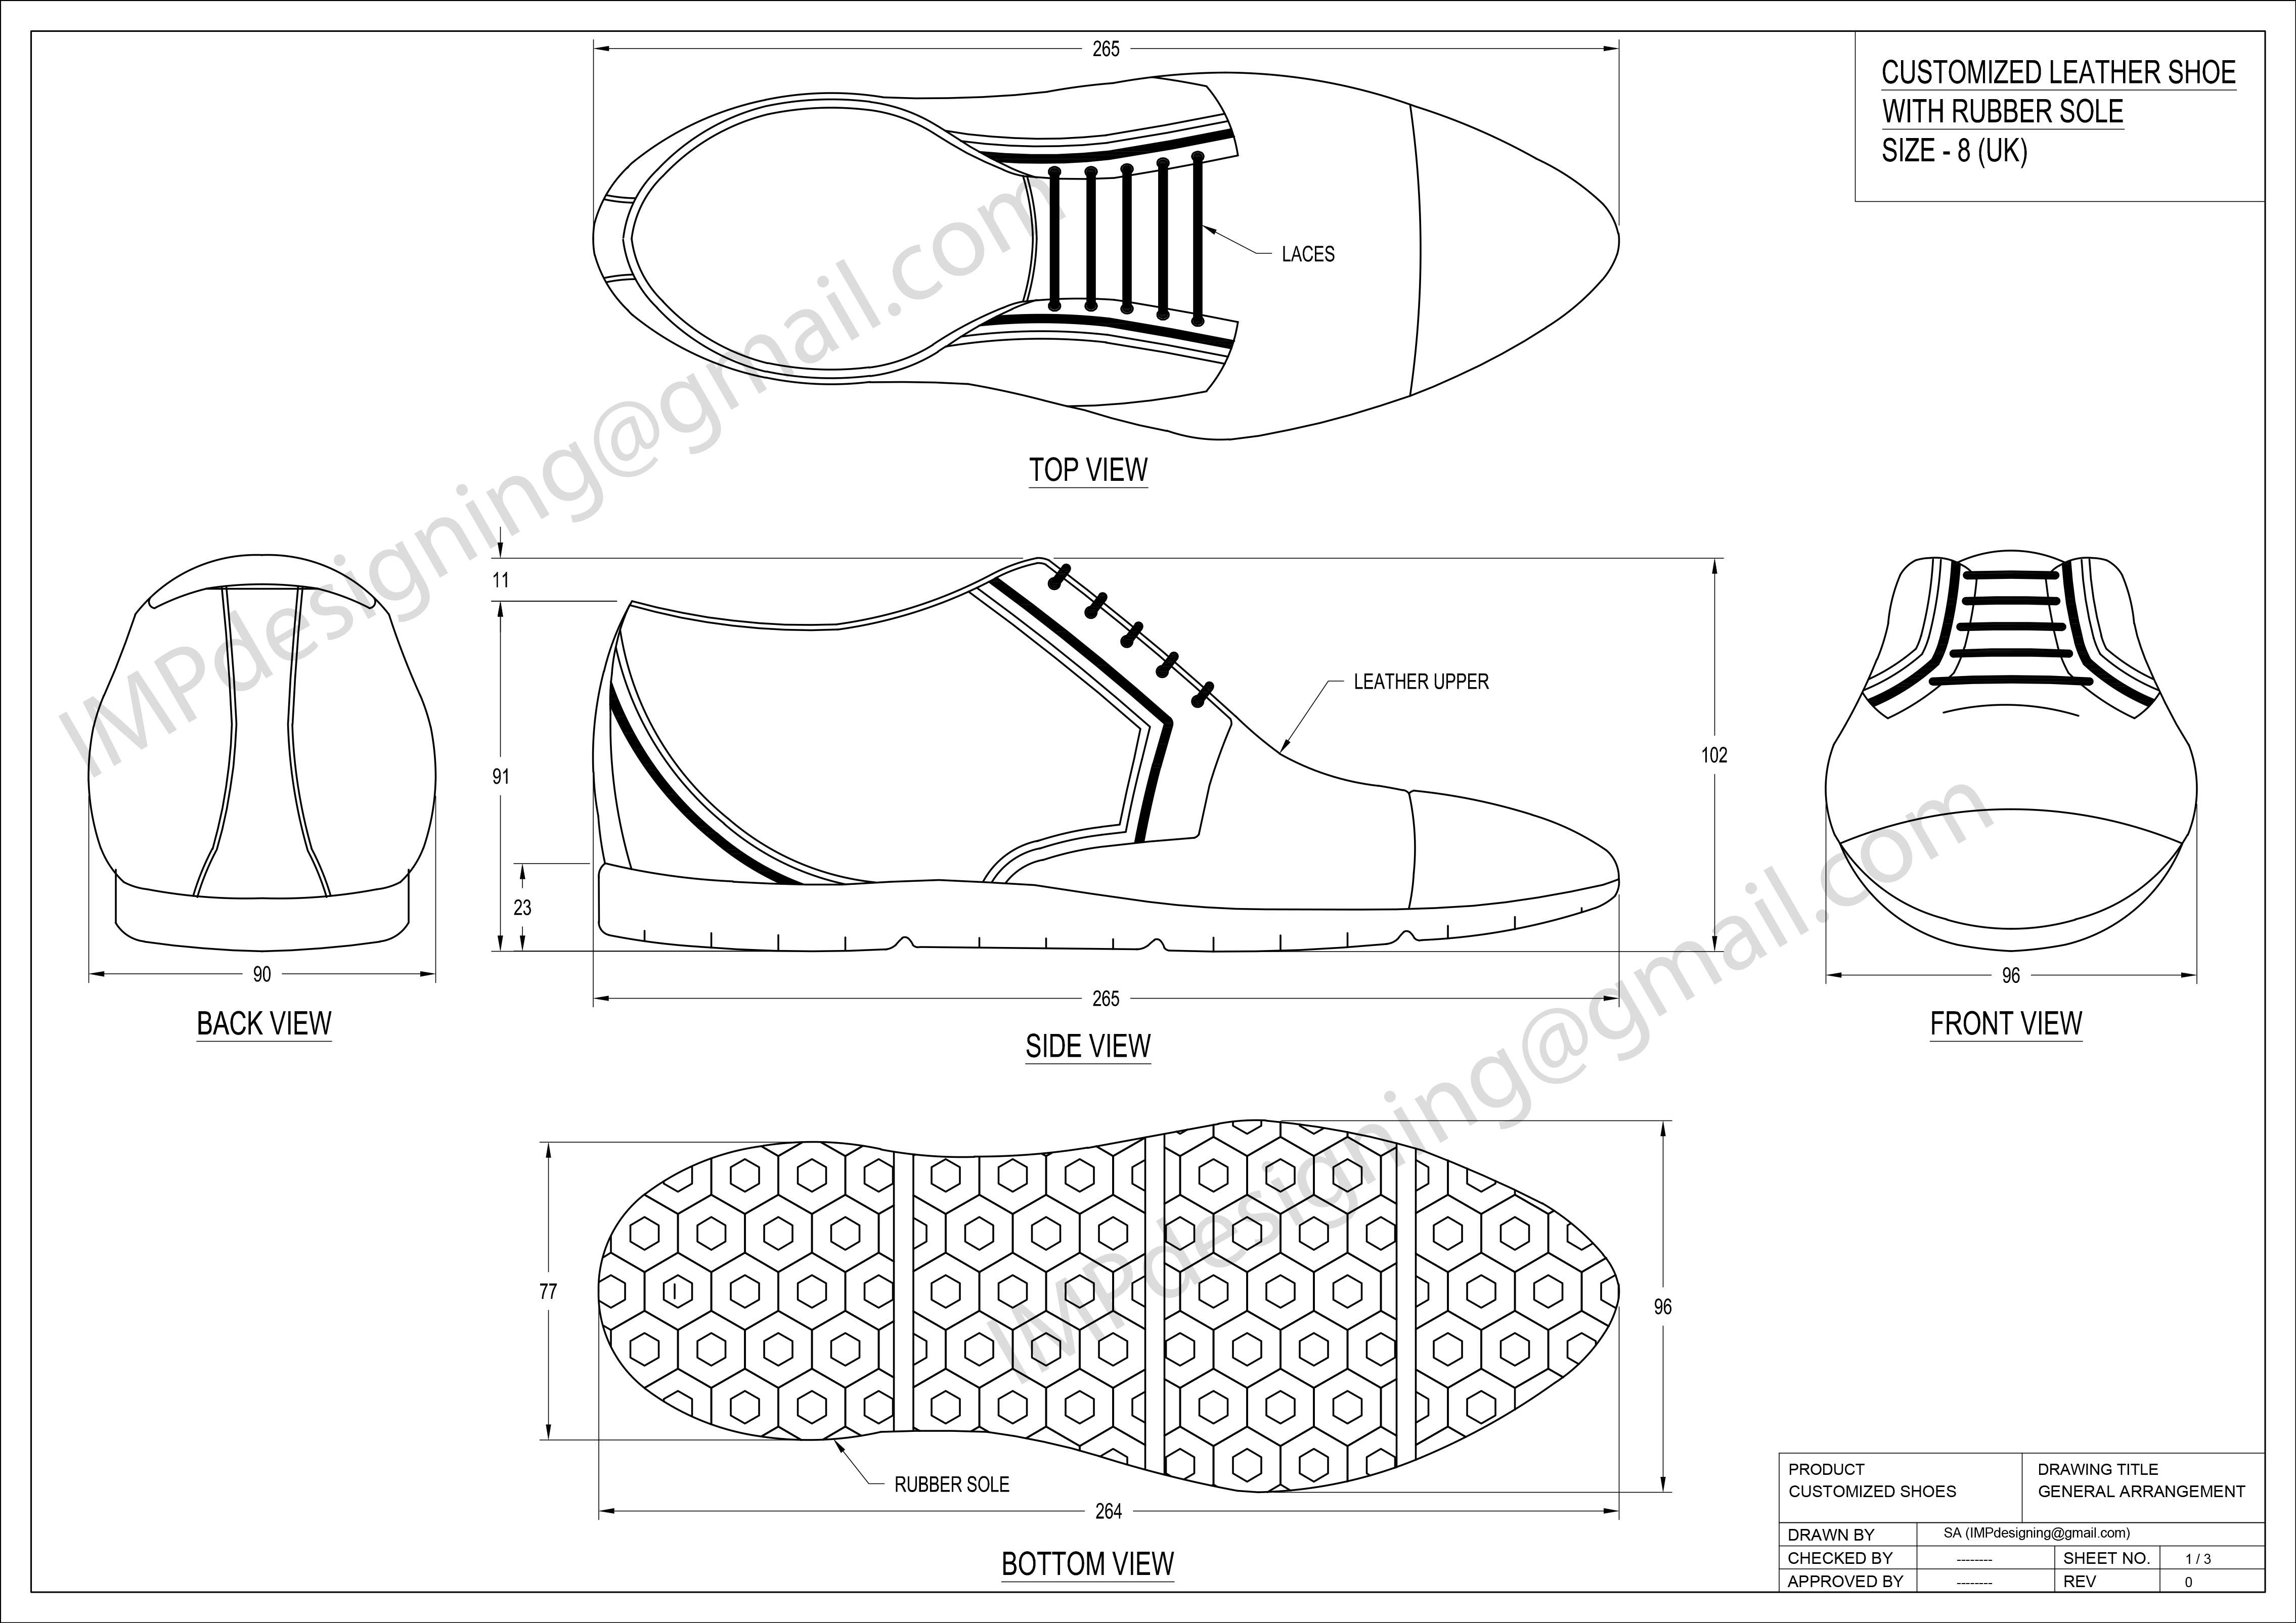 Customized shoes design-sketches and CAD